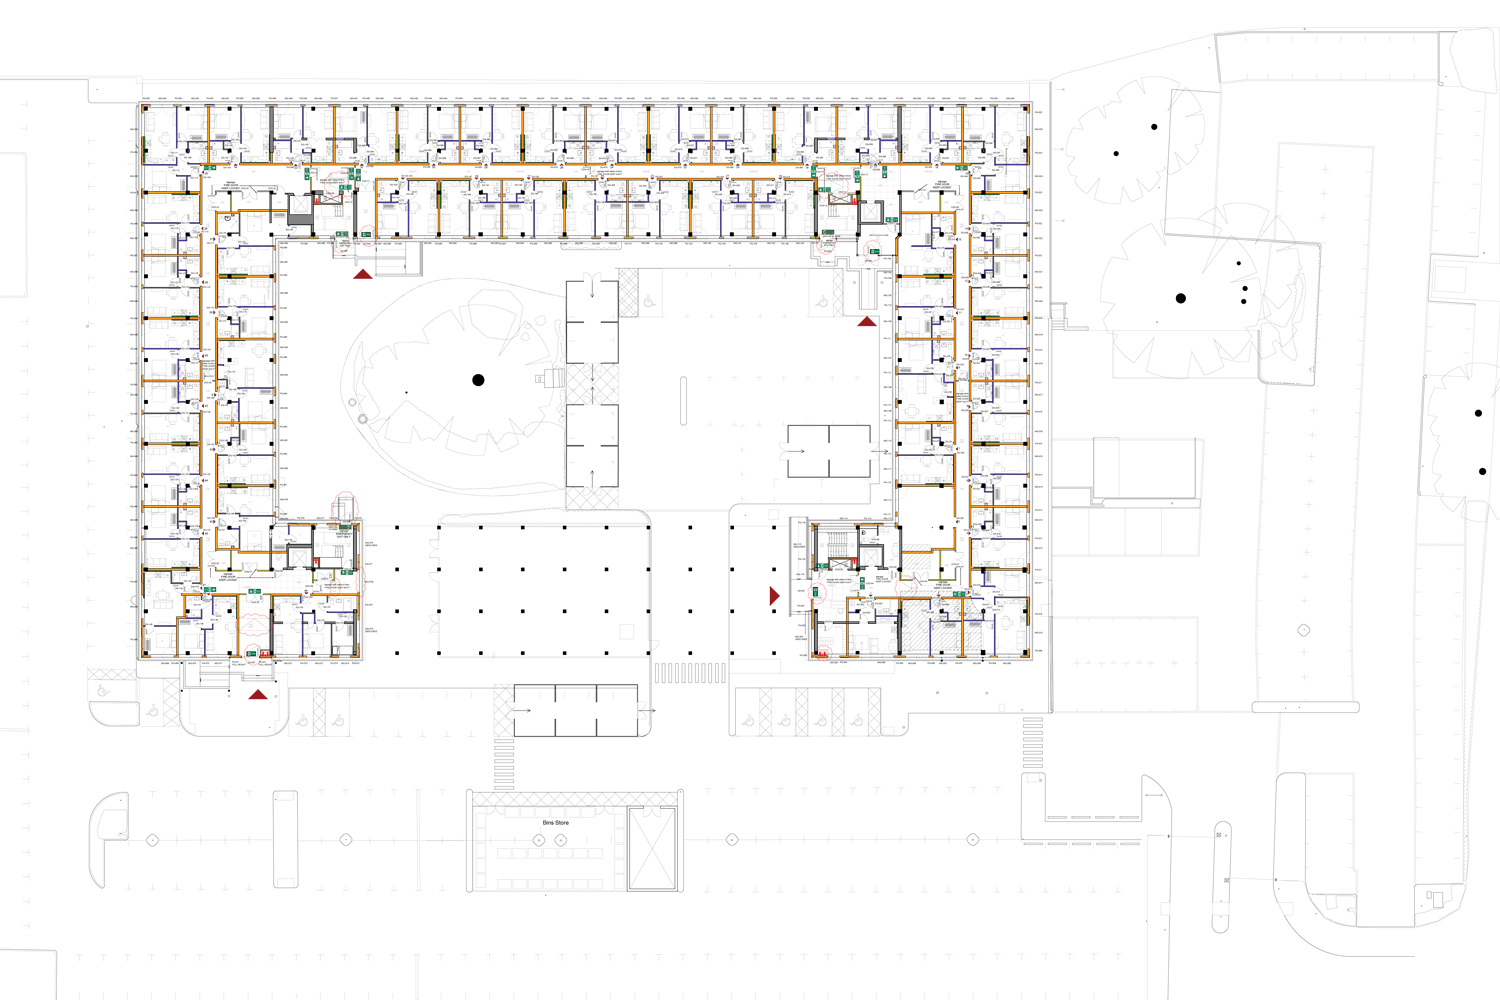 STH Site Plan.png